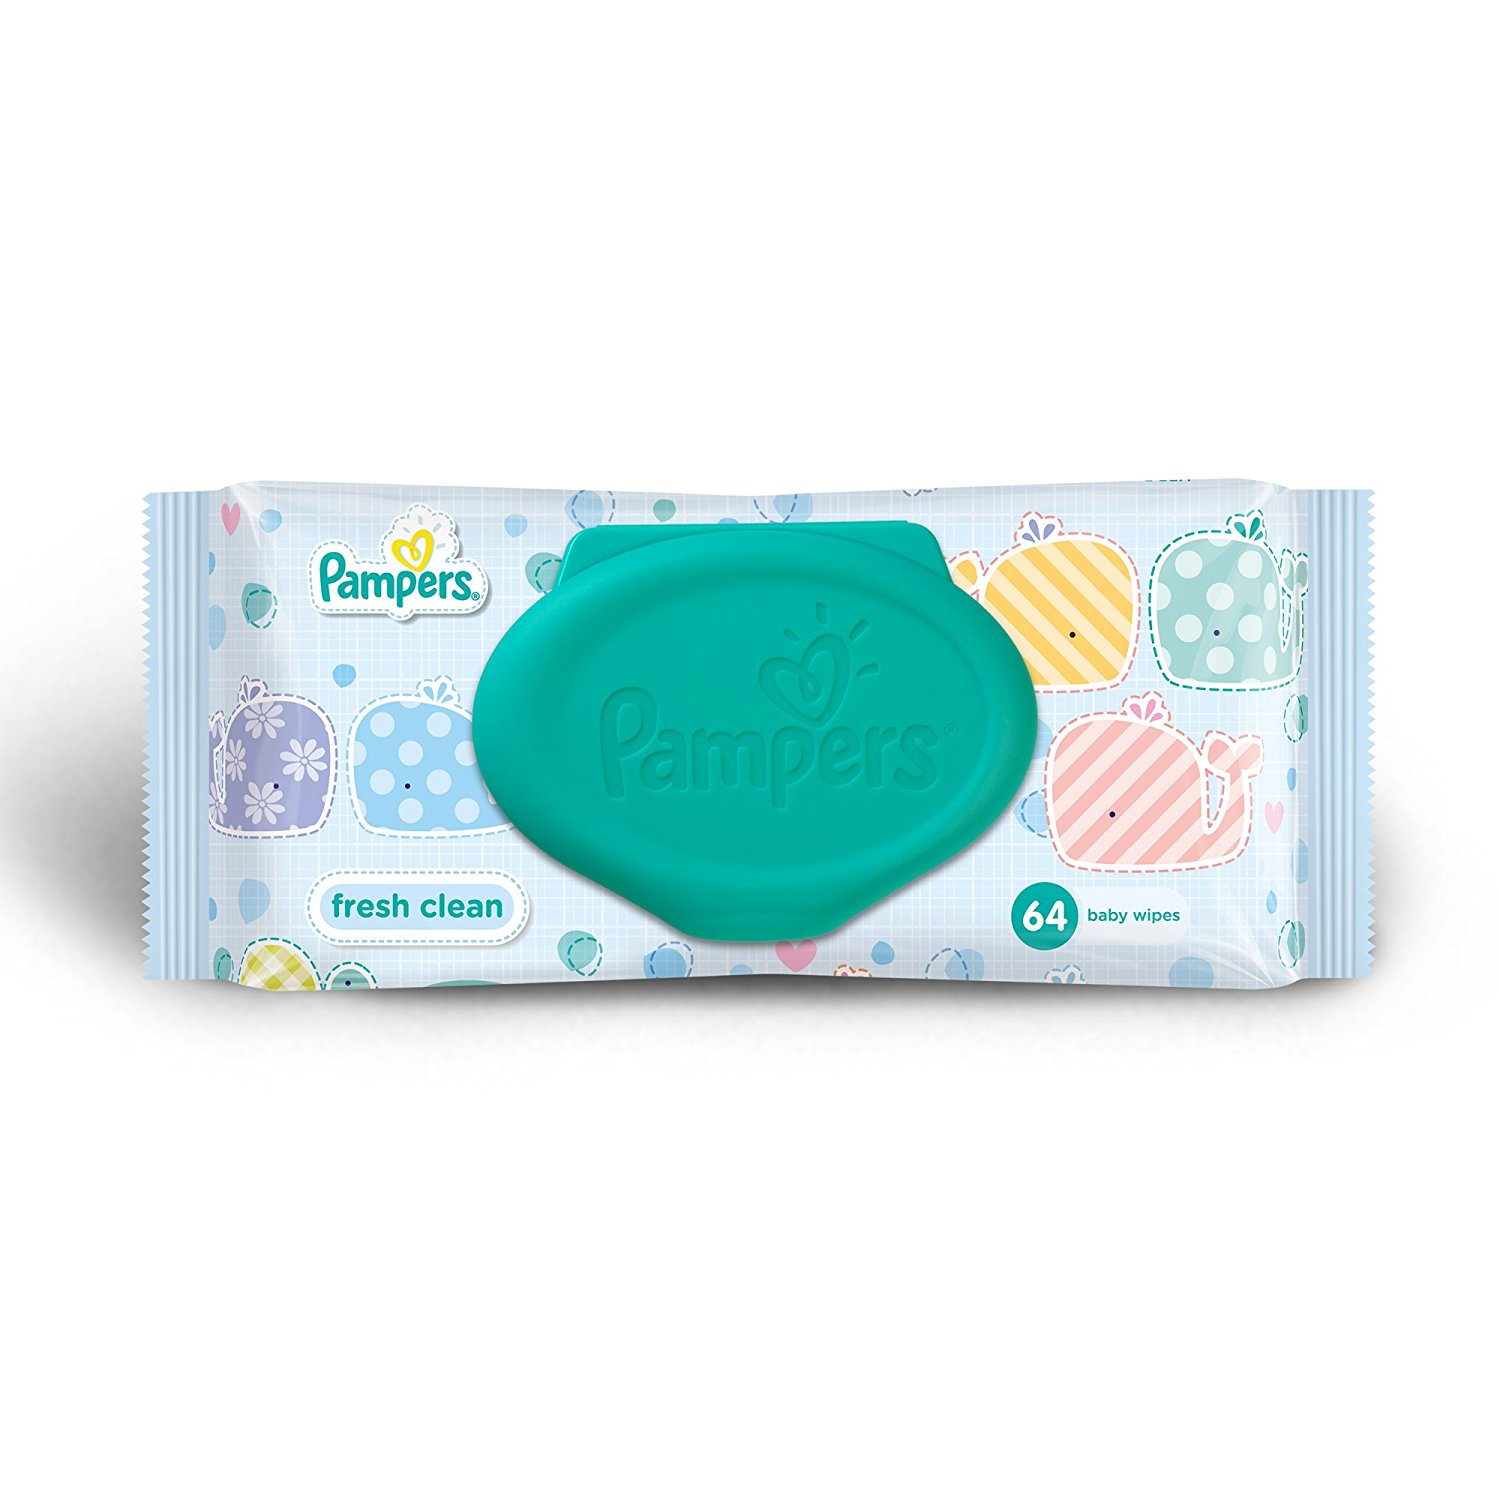 Pampers Wipes Fresh Clean Diapers(64 Count)